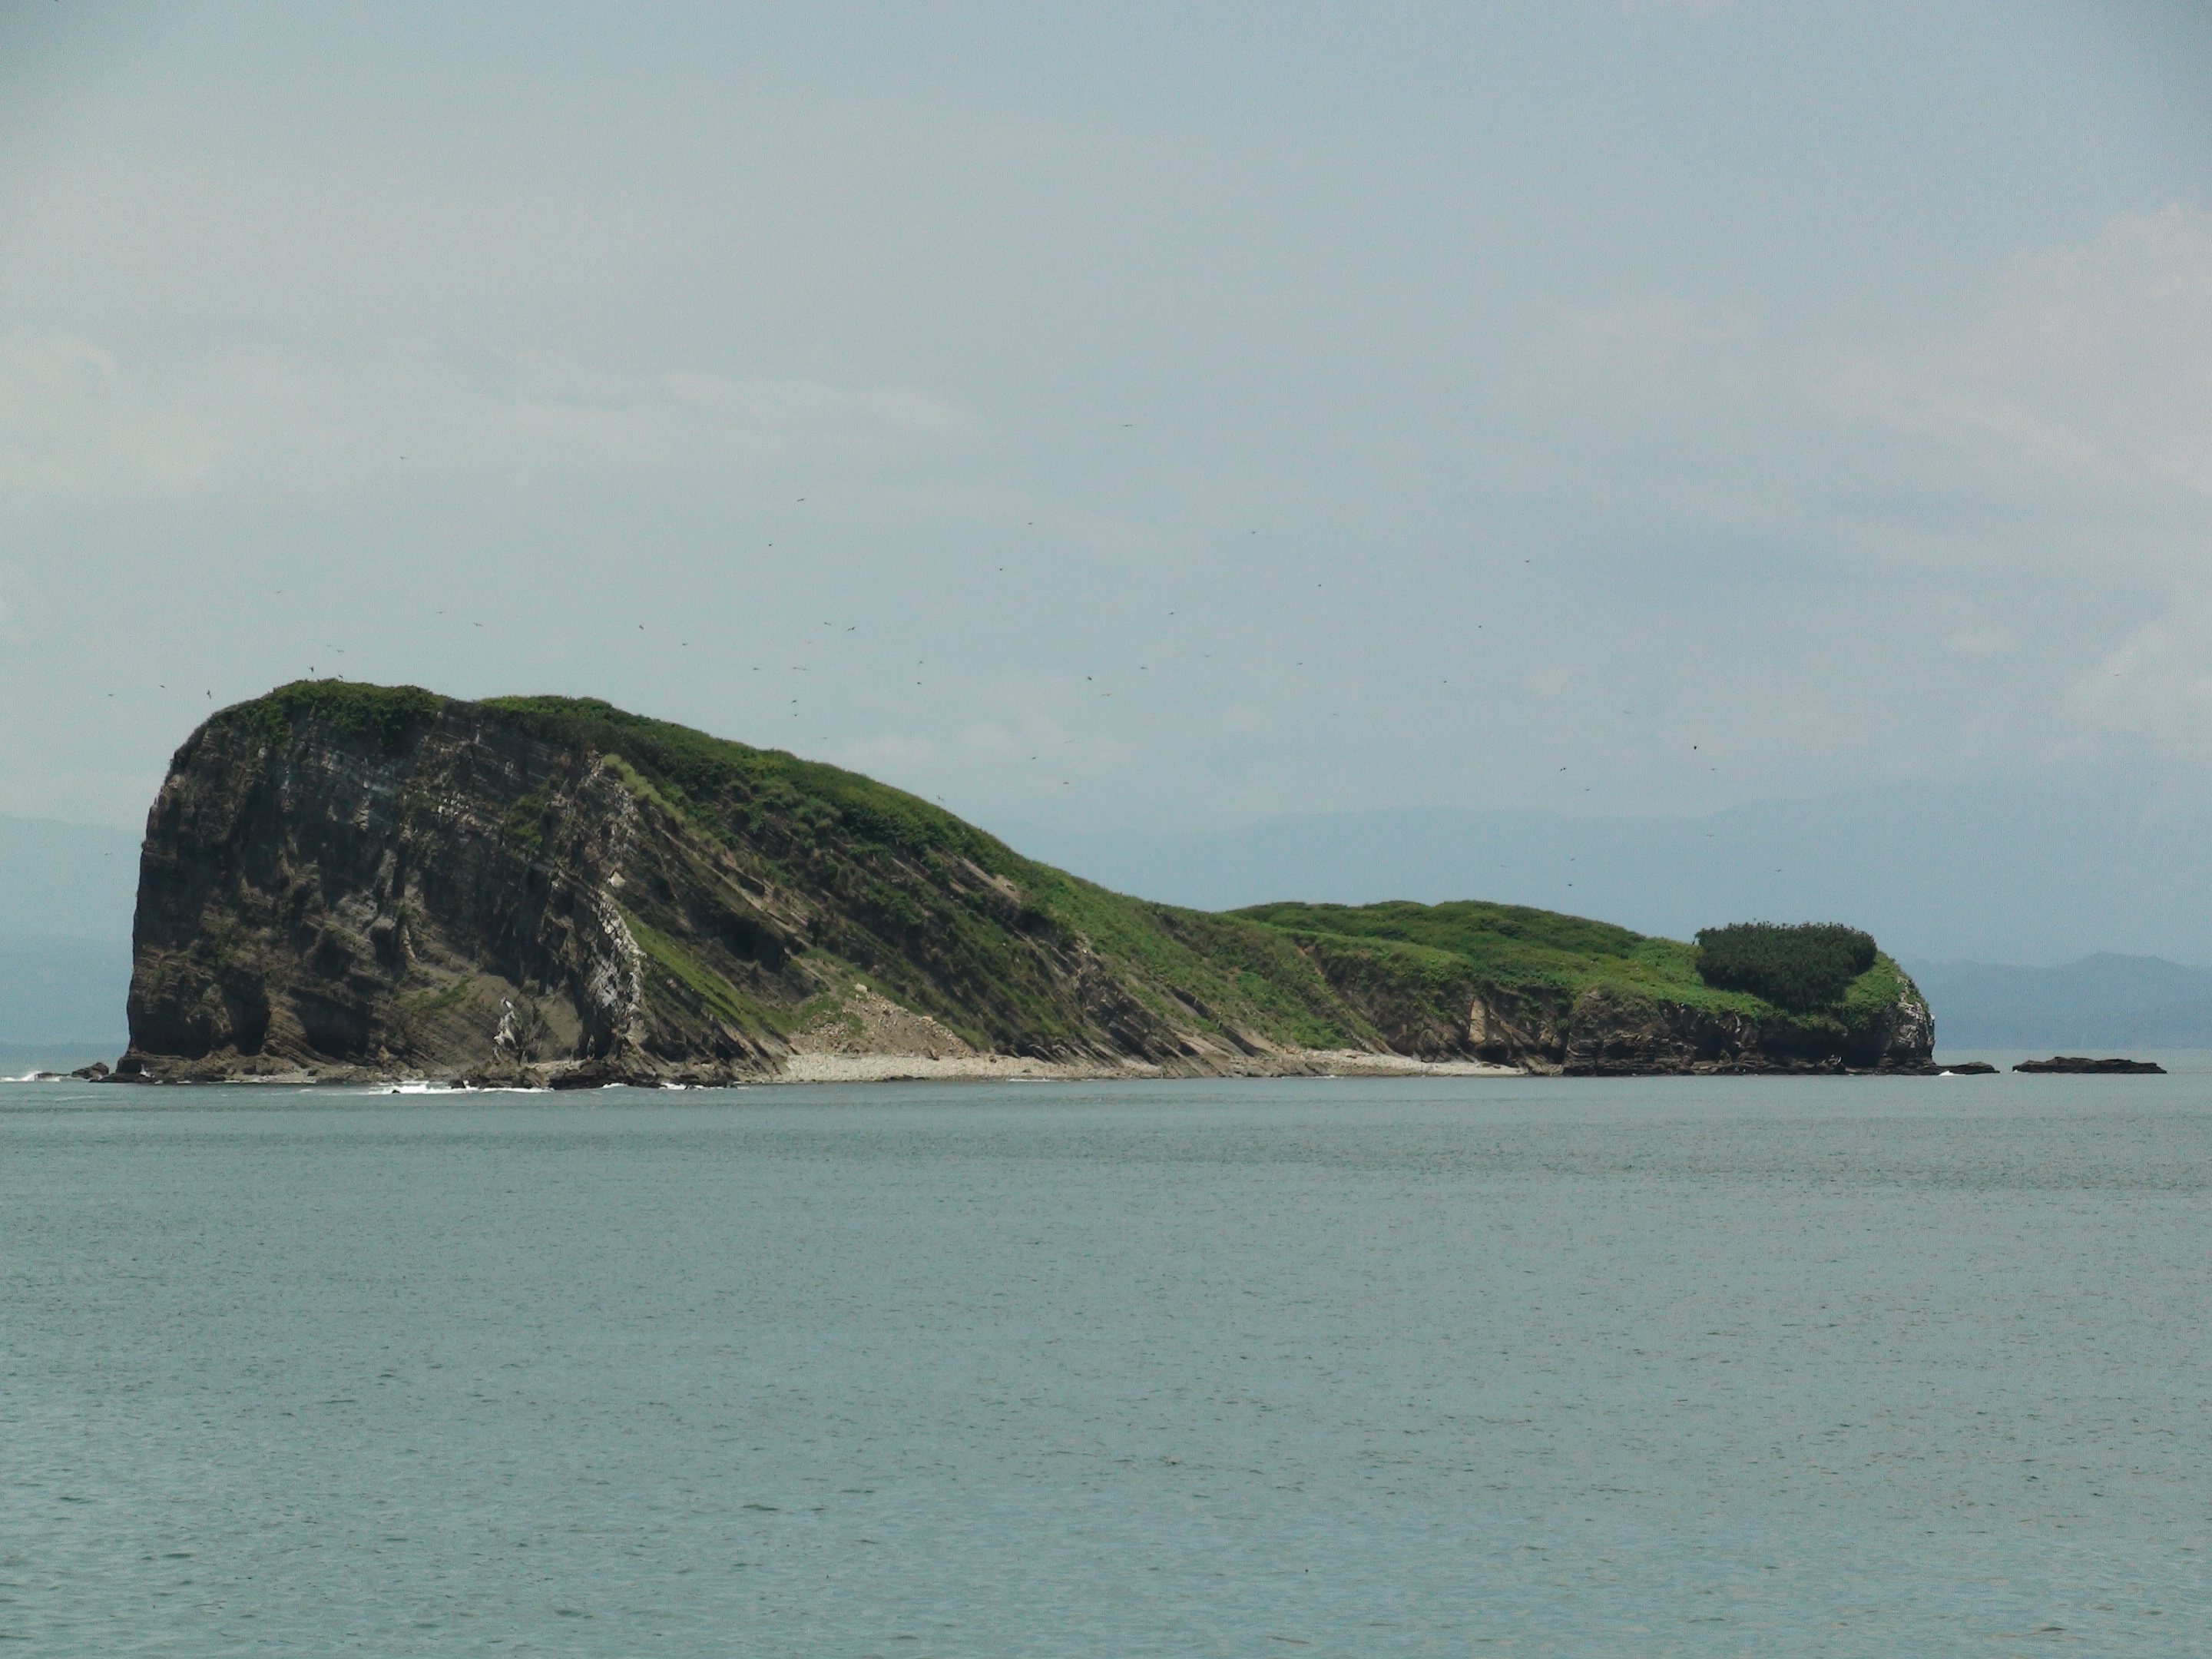 Another view of Isla San Lucas